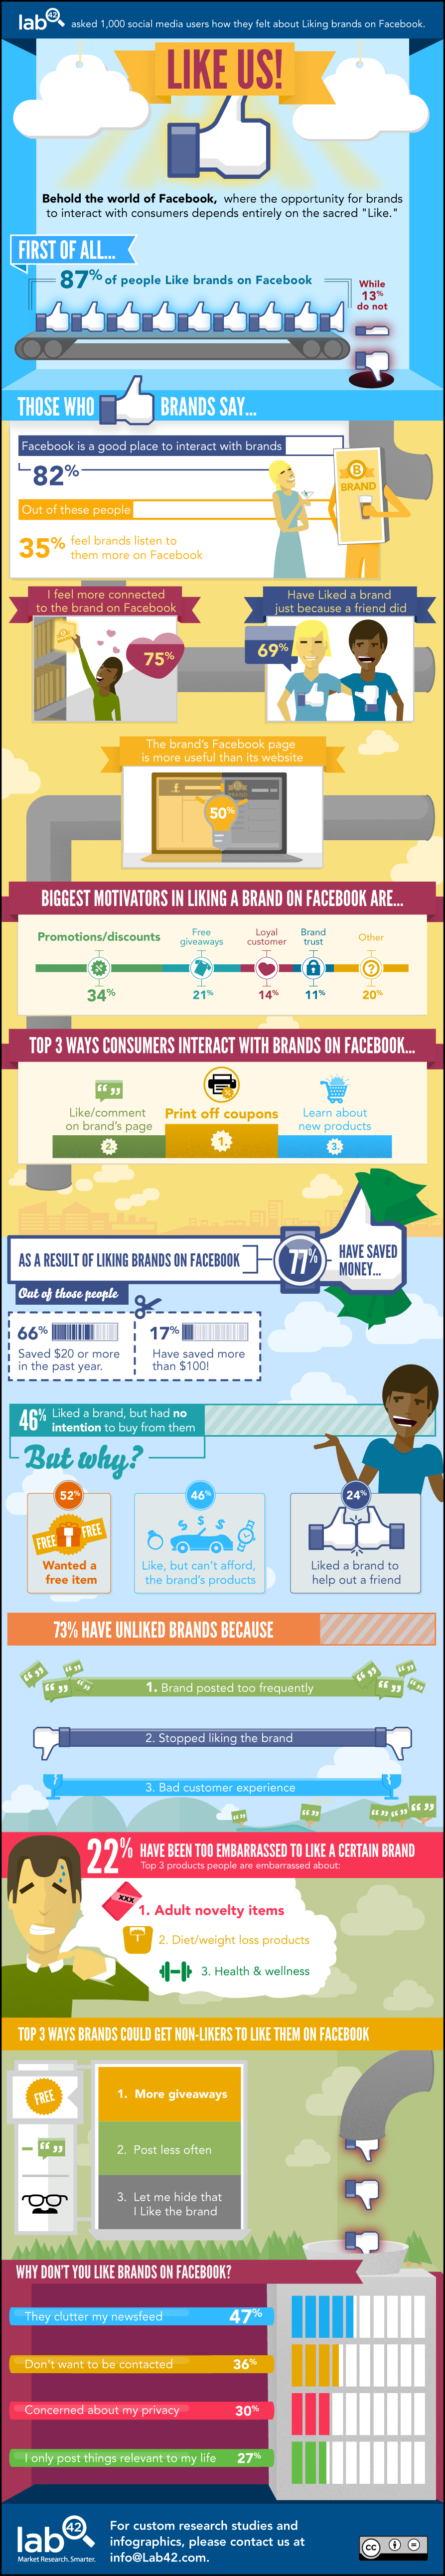 facebook brand likes infographic